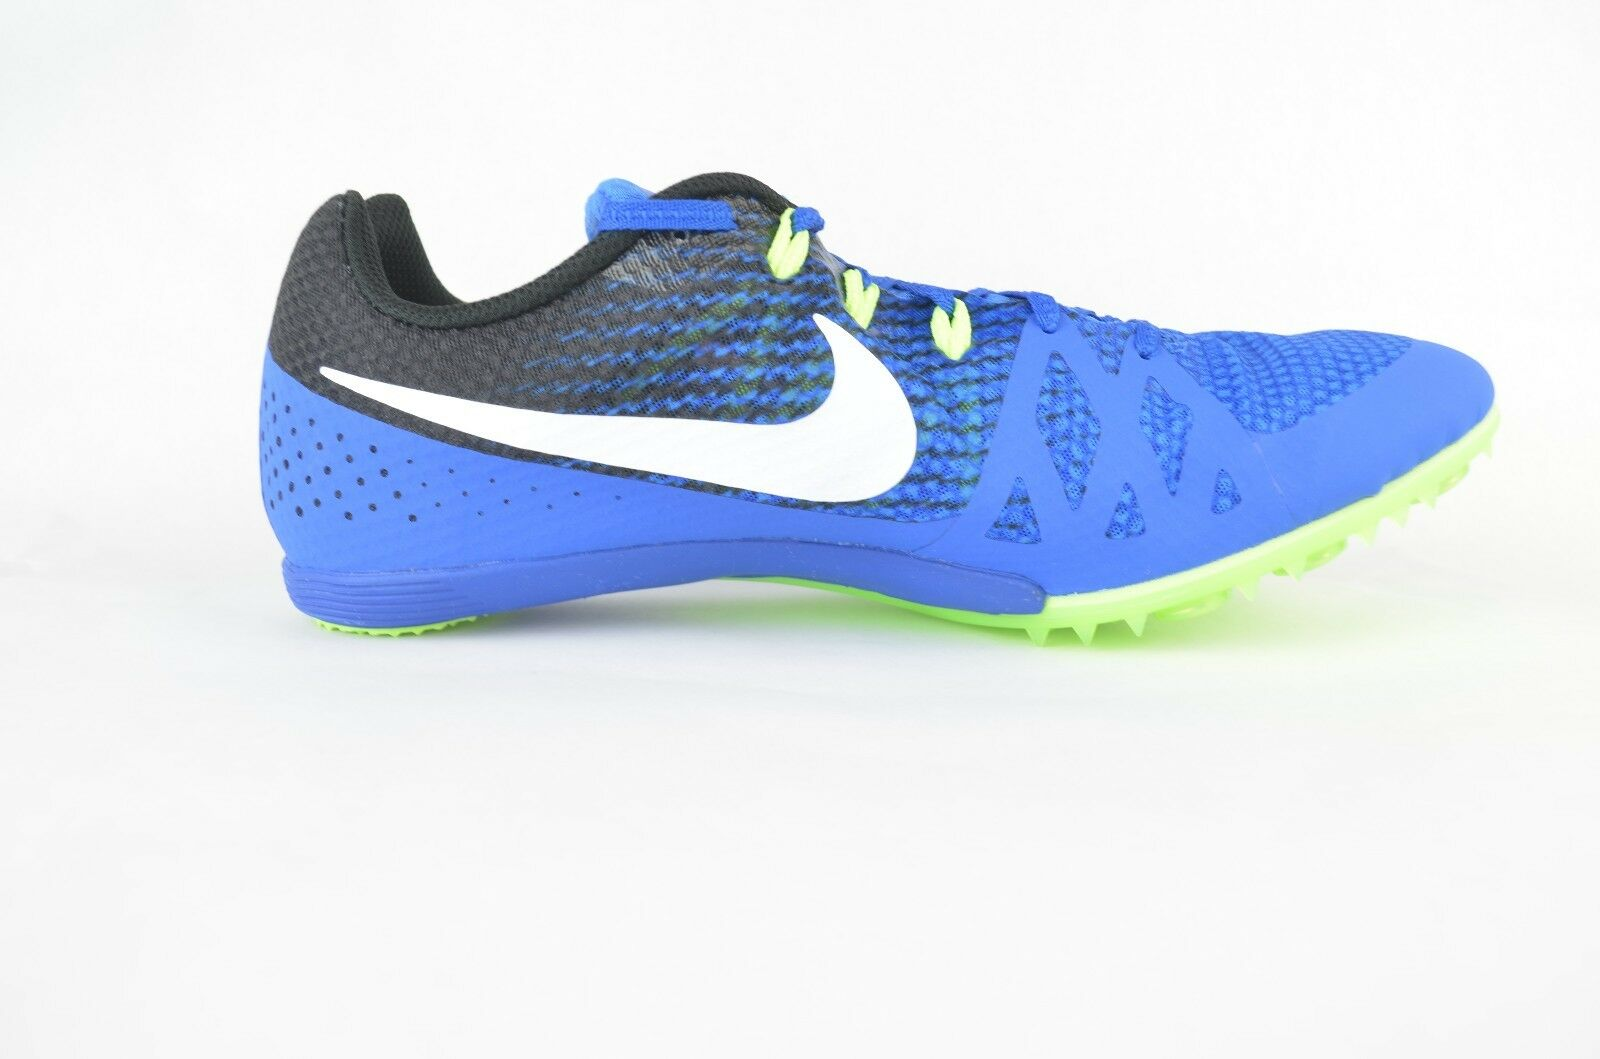 New Nike Zoom Rival M 8 Multi-Use Track Racing Shoes Spikes, size 12 Comfortable and good-looking